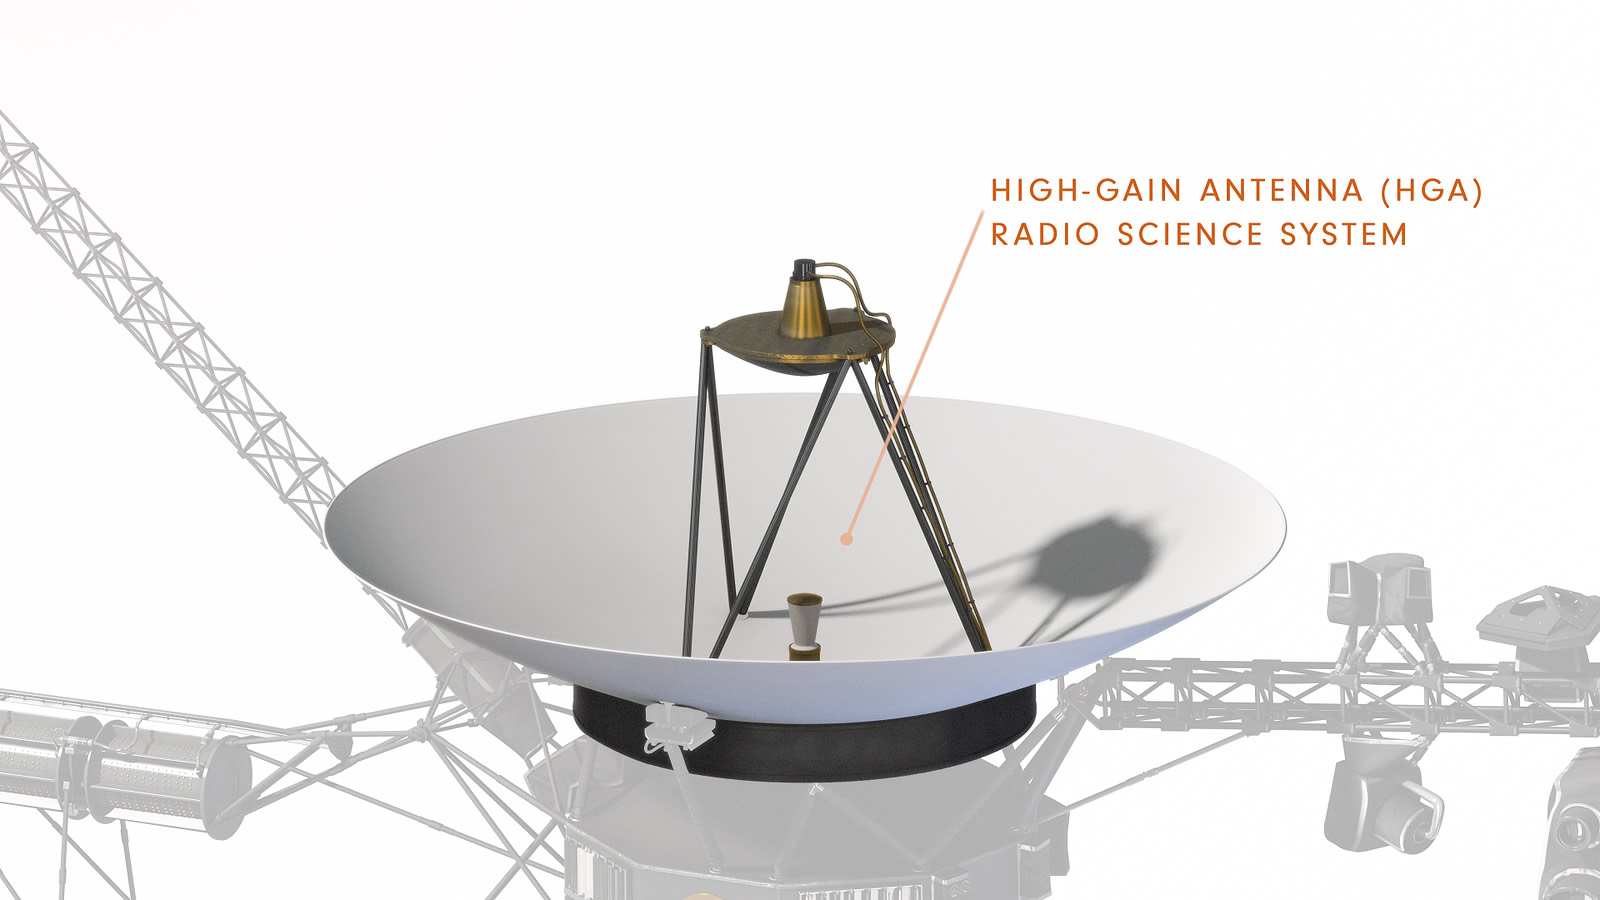 Diagram of Voyager showing High Gain Antenna